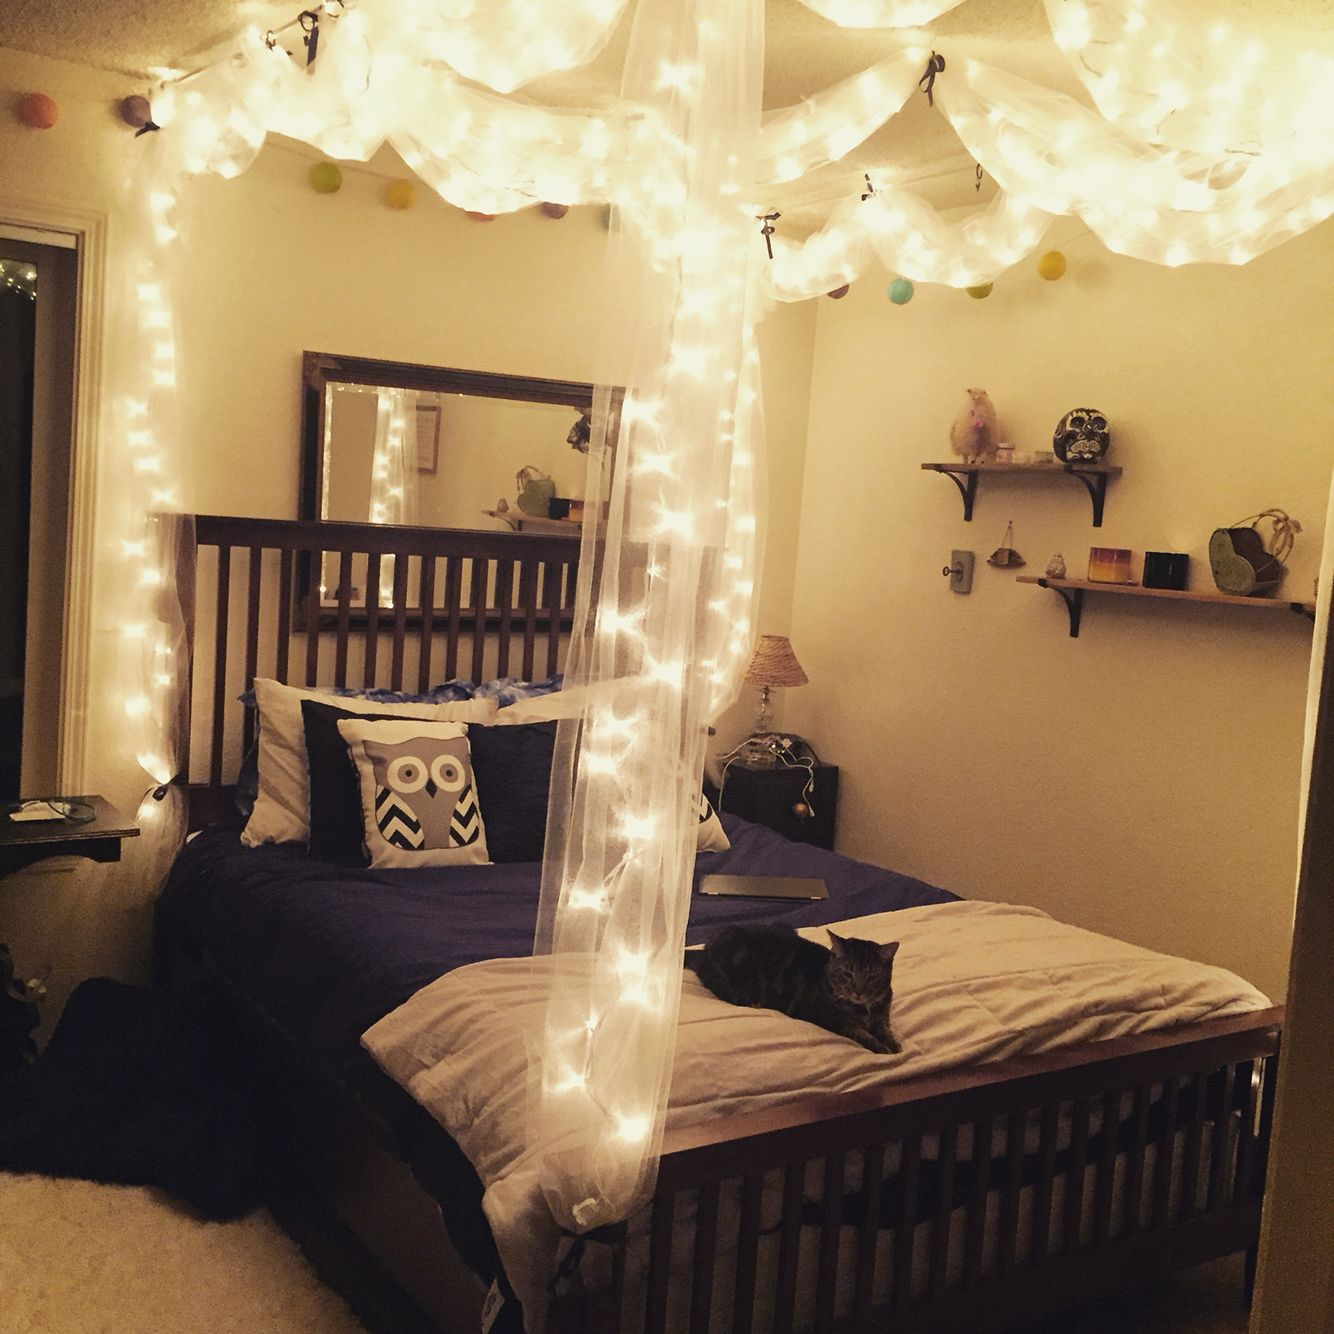 Diy bed canopy with lights diy pinterest canopy for Bed decoration diy